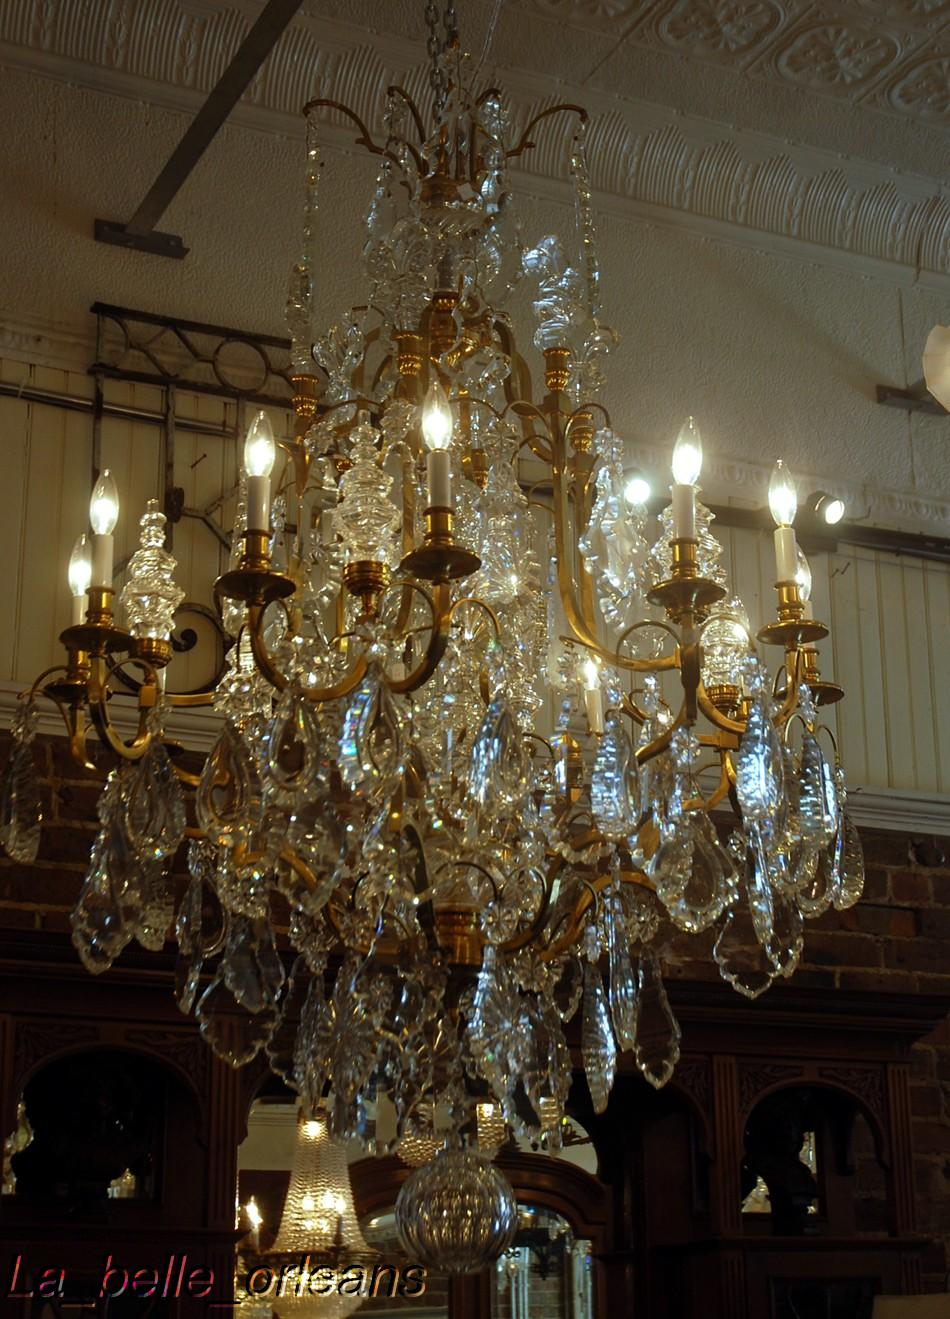 MONUMENTAL PAIR FRENCH CRYSTAL & BRONZE CHANDELIERS - For Sale - MONUMENTAL PAIR FRENCH CRYSTAL & BRONZE CHANDELIERS For Sale